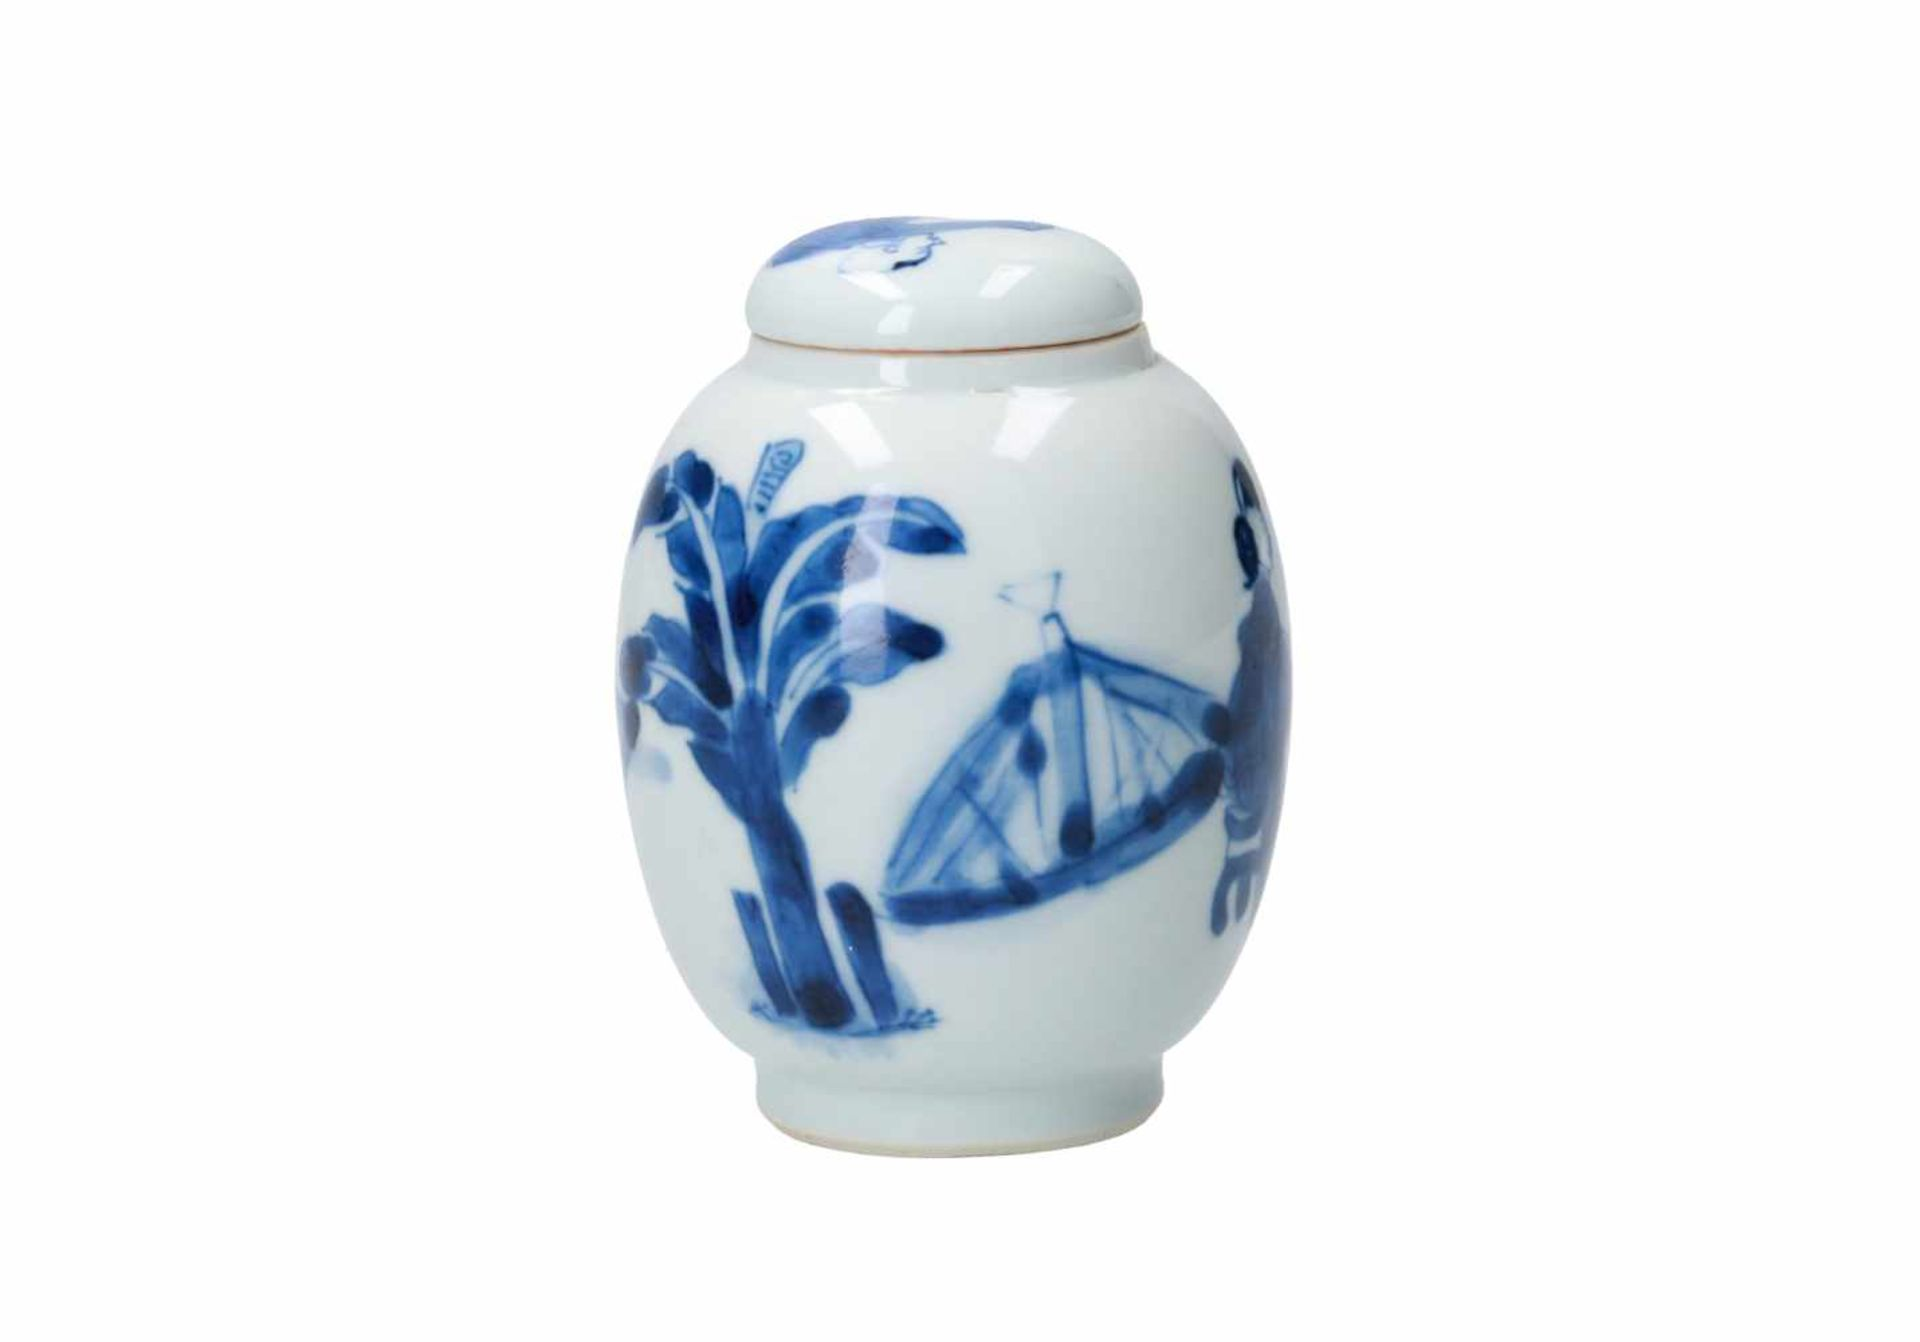 A blue and white porcelain lidded jar, decorated with figures around a table. Unmarked. China, - Bild 3 aus 5